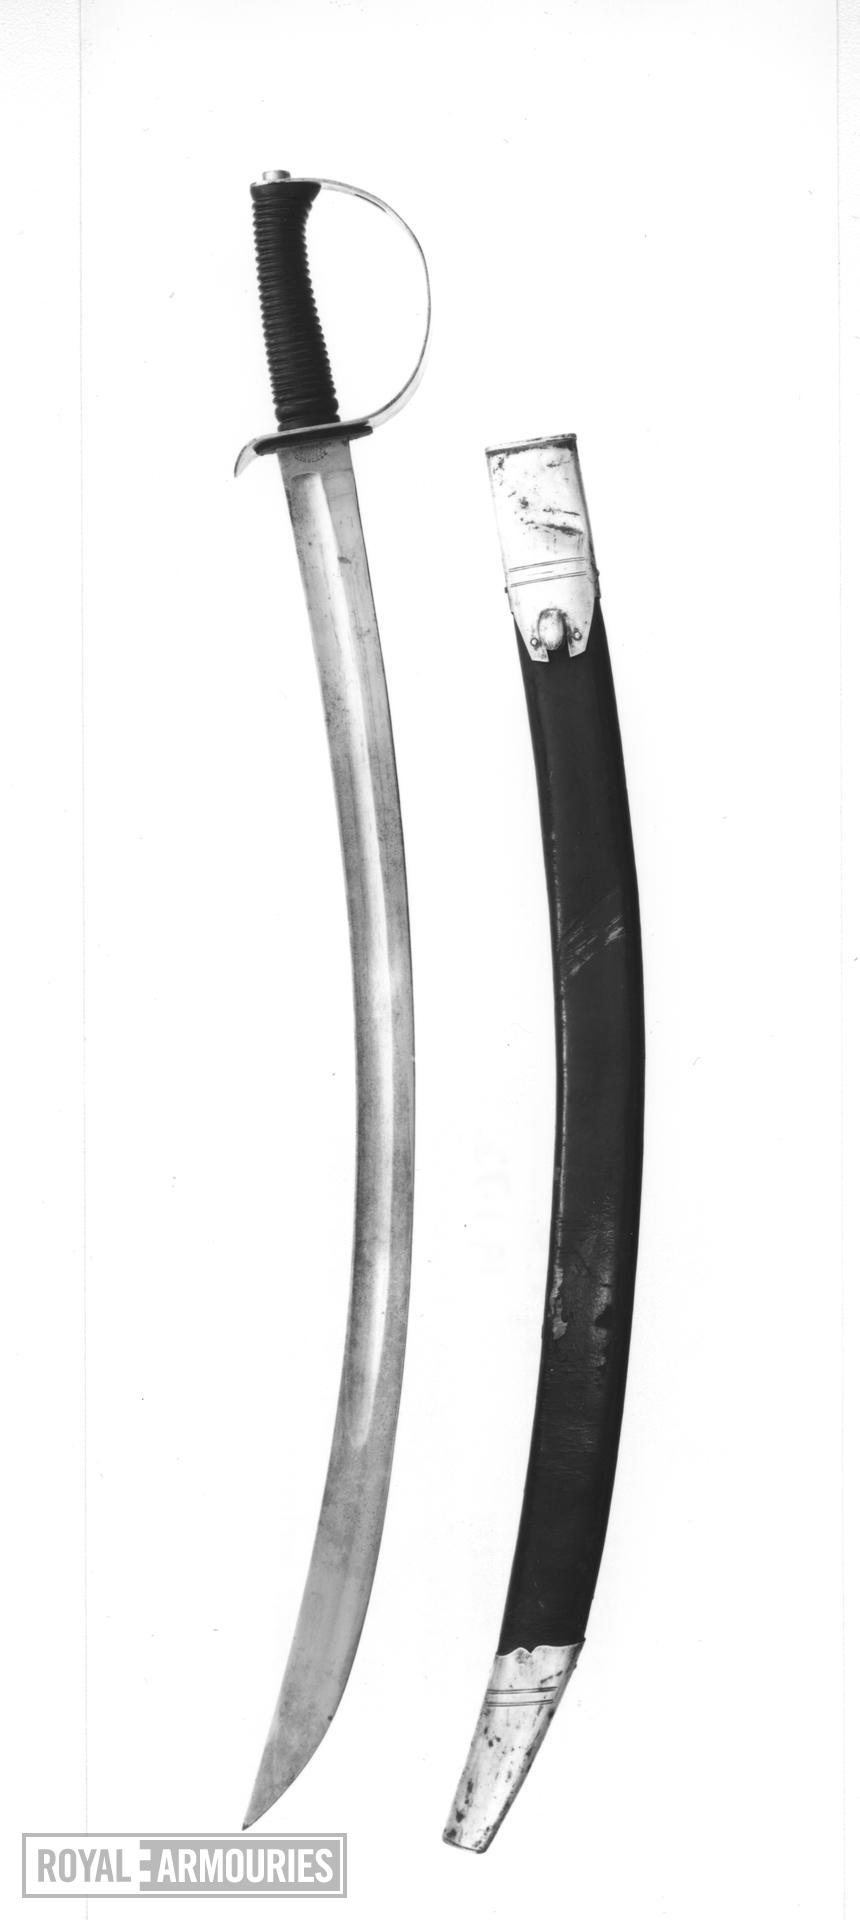 Sword and scabbard Mountain Artillery Sword, Pattern 1896, with Mk II scabbard. This example made for the Indian service. Blade marked E. Thurkle.